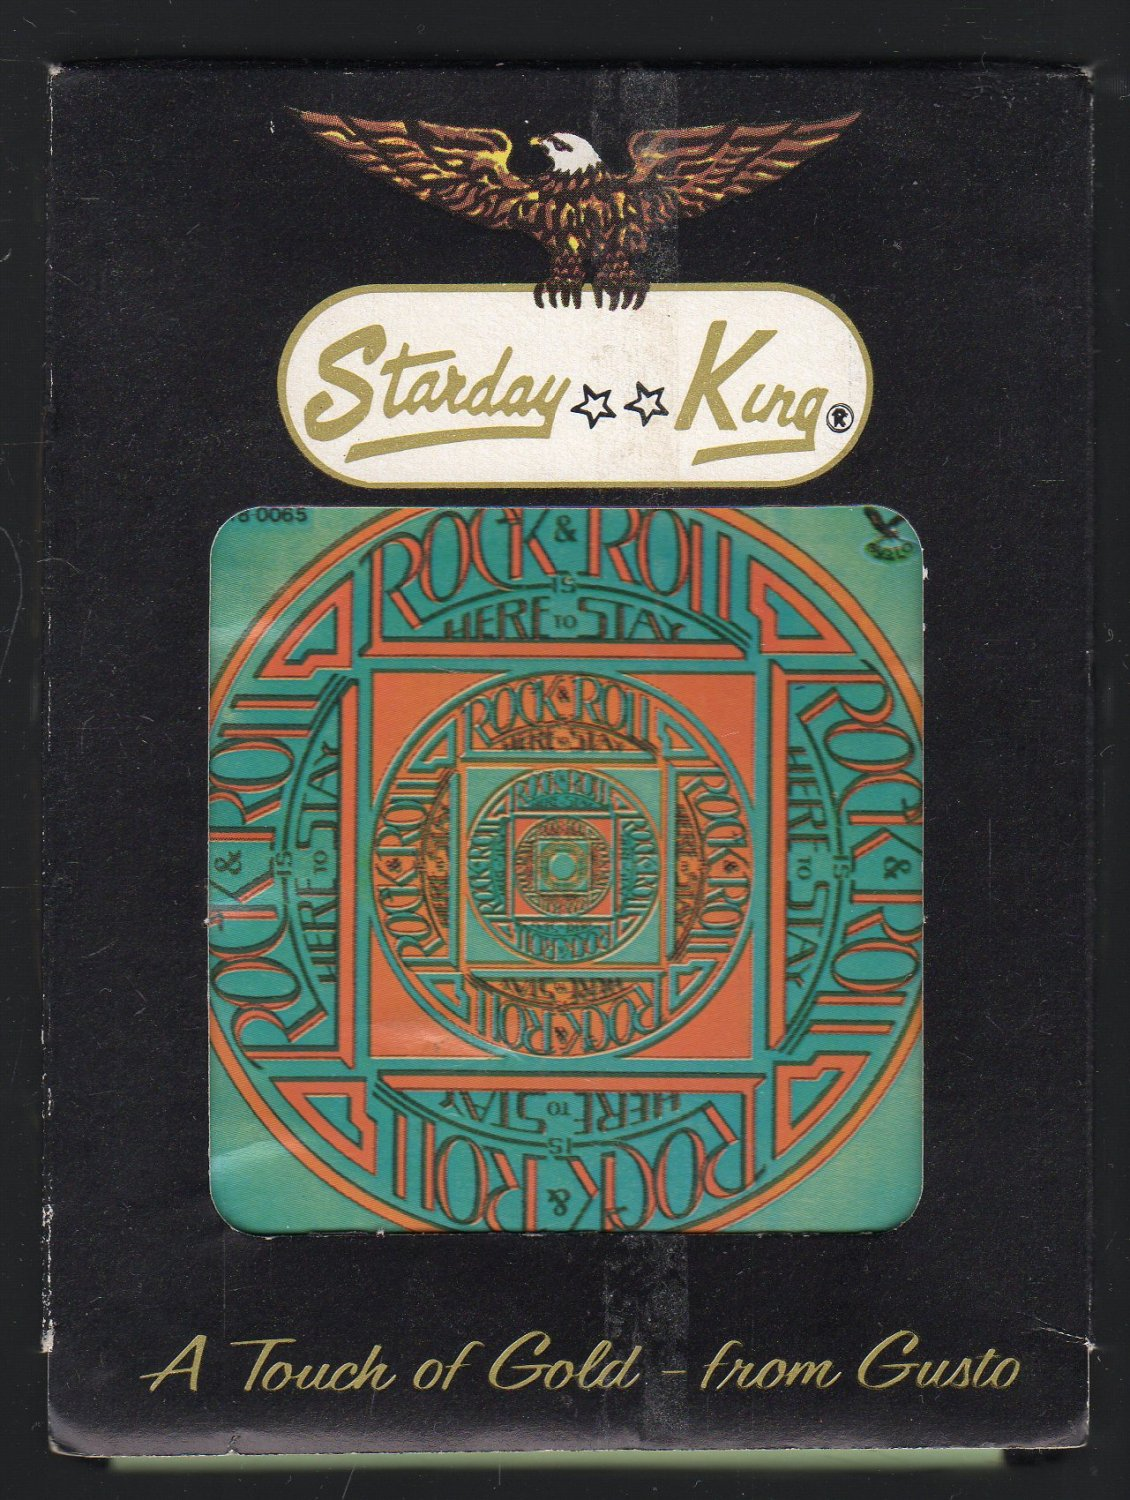 Rock And Roll Is Here To Stay - Original Artists 1980 GUSTO A19A 8-TRACK TAPE